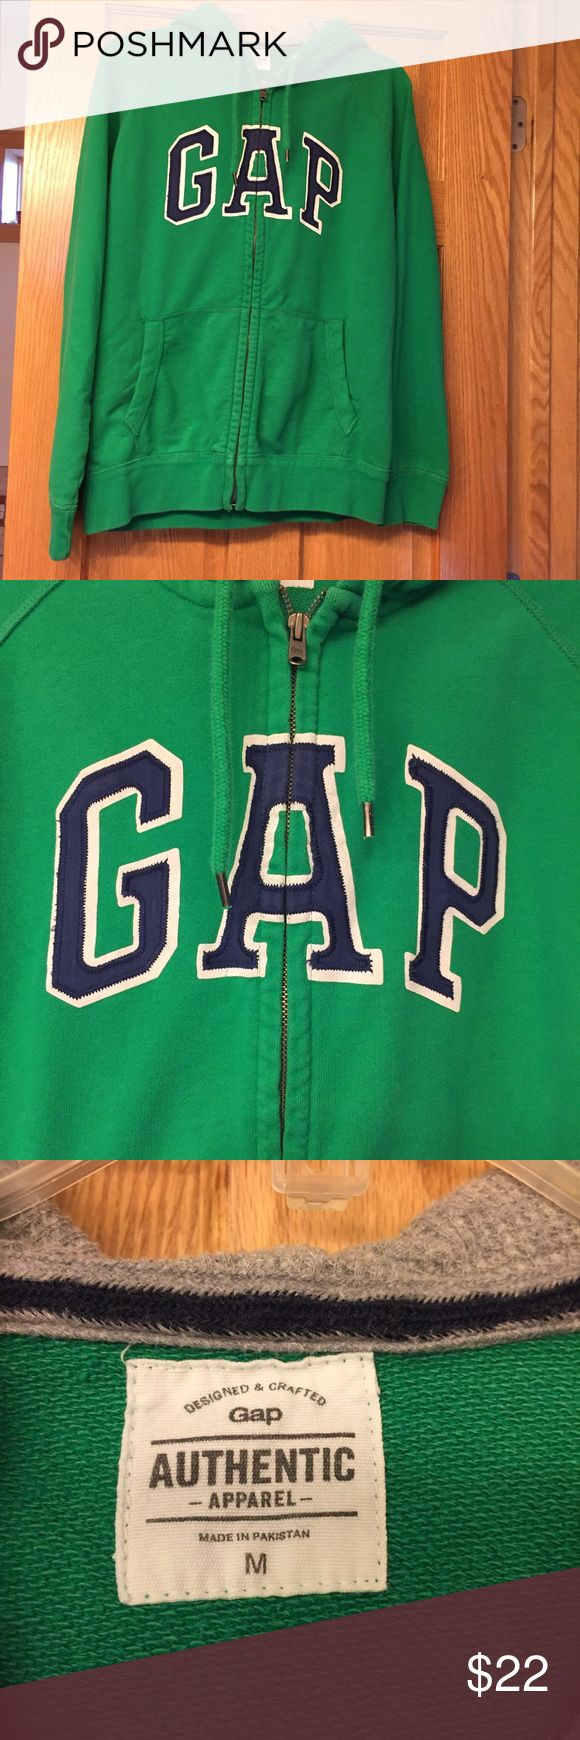 GAP Kelly Green Zip-Up Hoodie Men's M/Women's L GAP Kelly Green Zip-Up Hoodie Men's M/Fits like Women's L.  EUC.  Worn maybe once.  Gorgeous color, have downsized and wish this fit! GAP Tops Sweatshirts & Hoodies